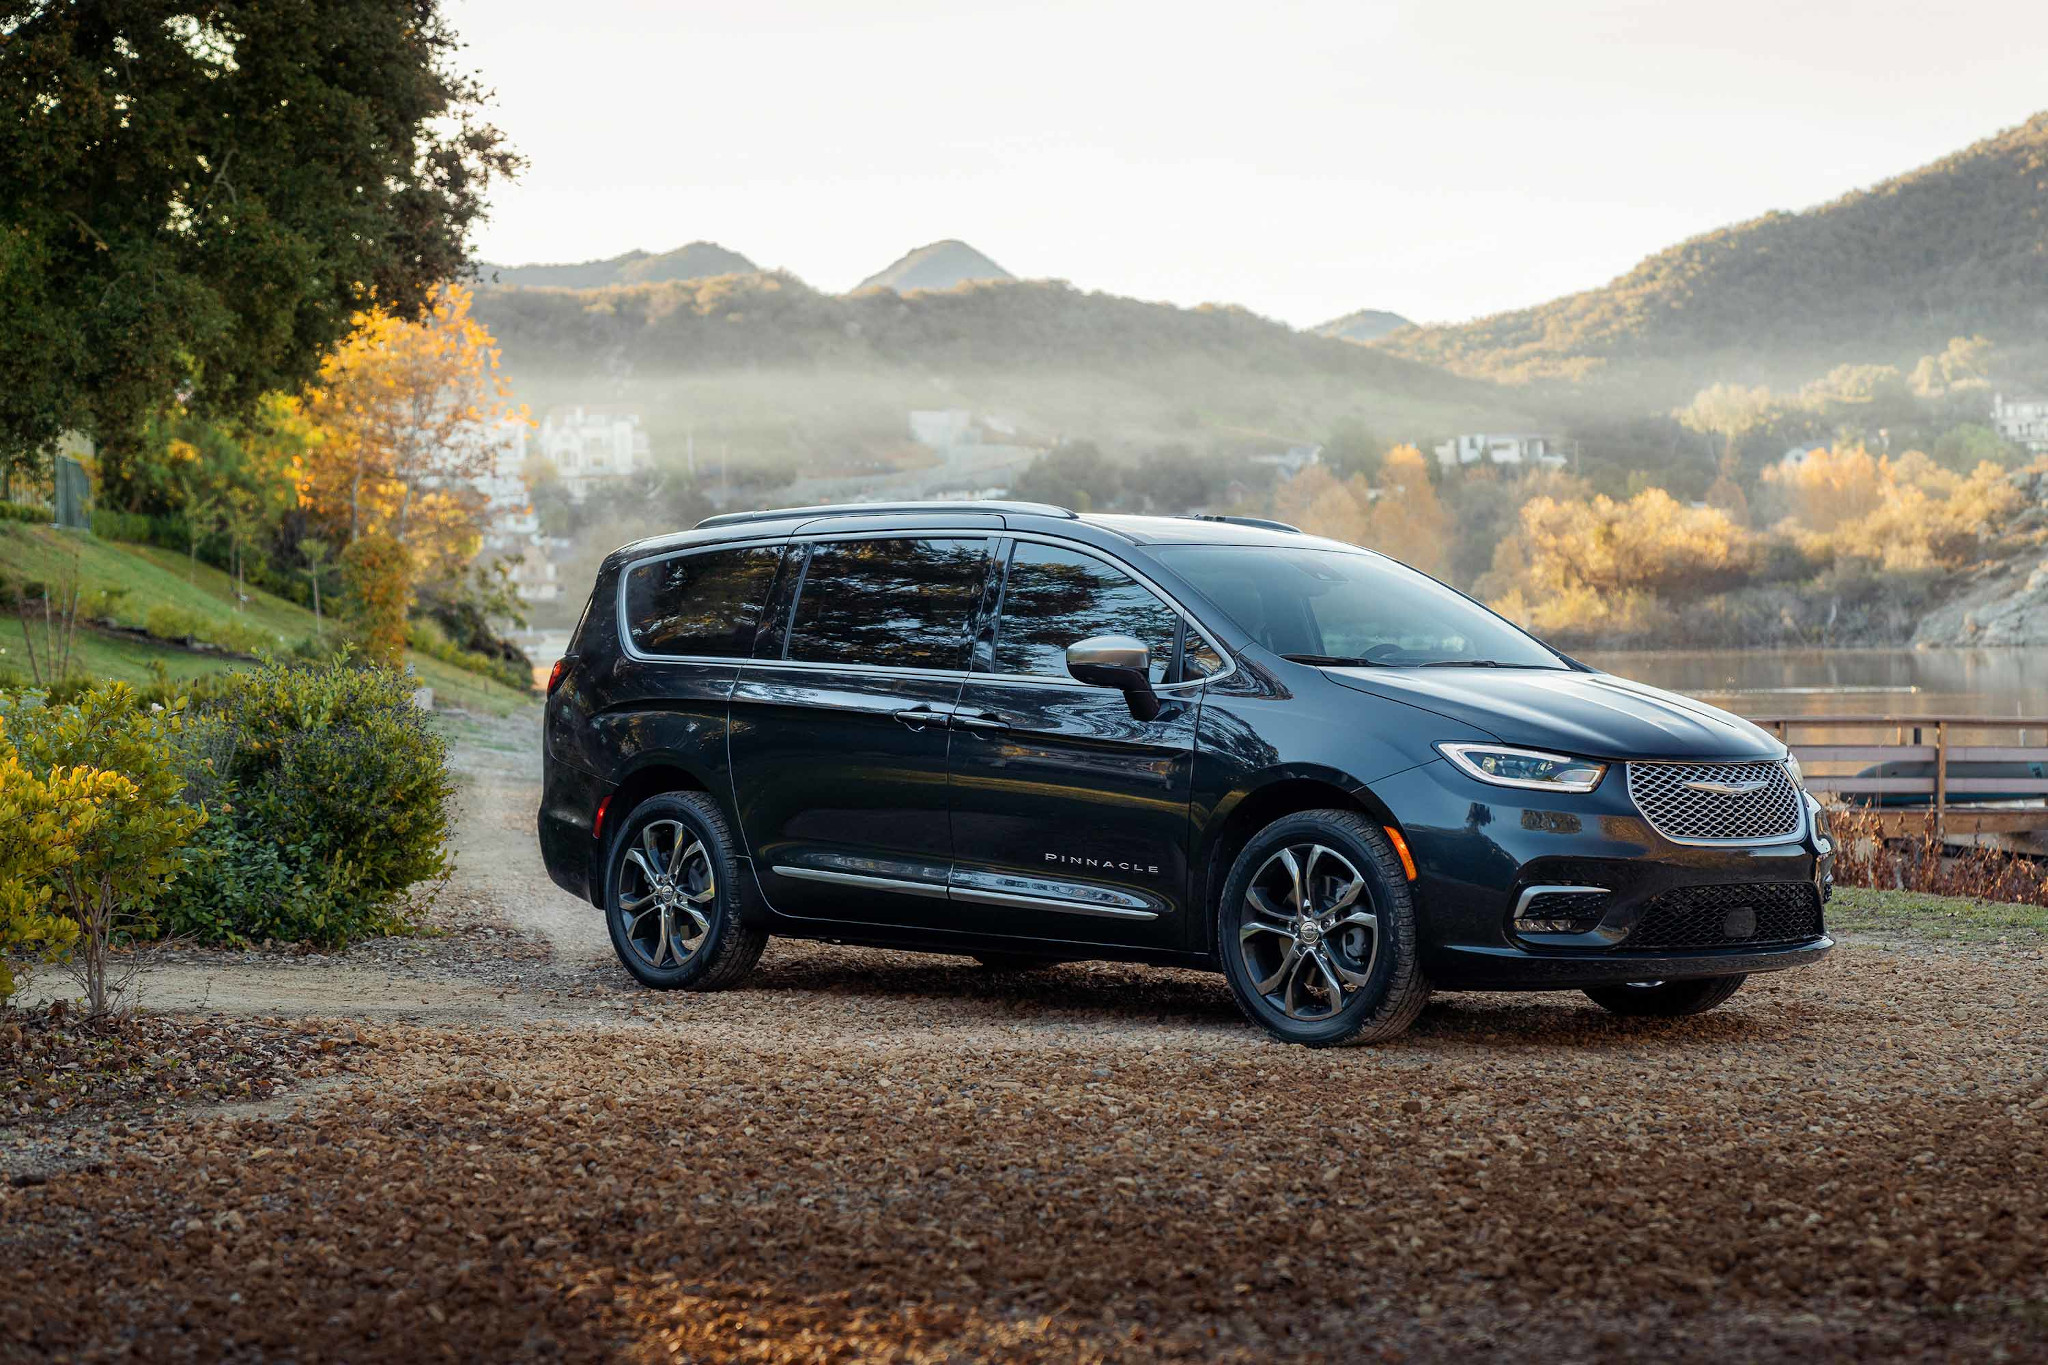 2021 Chrysler Pacifica: Because You'd Really Rather Have an SUV